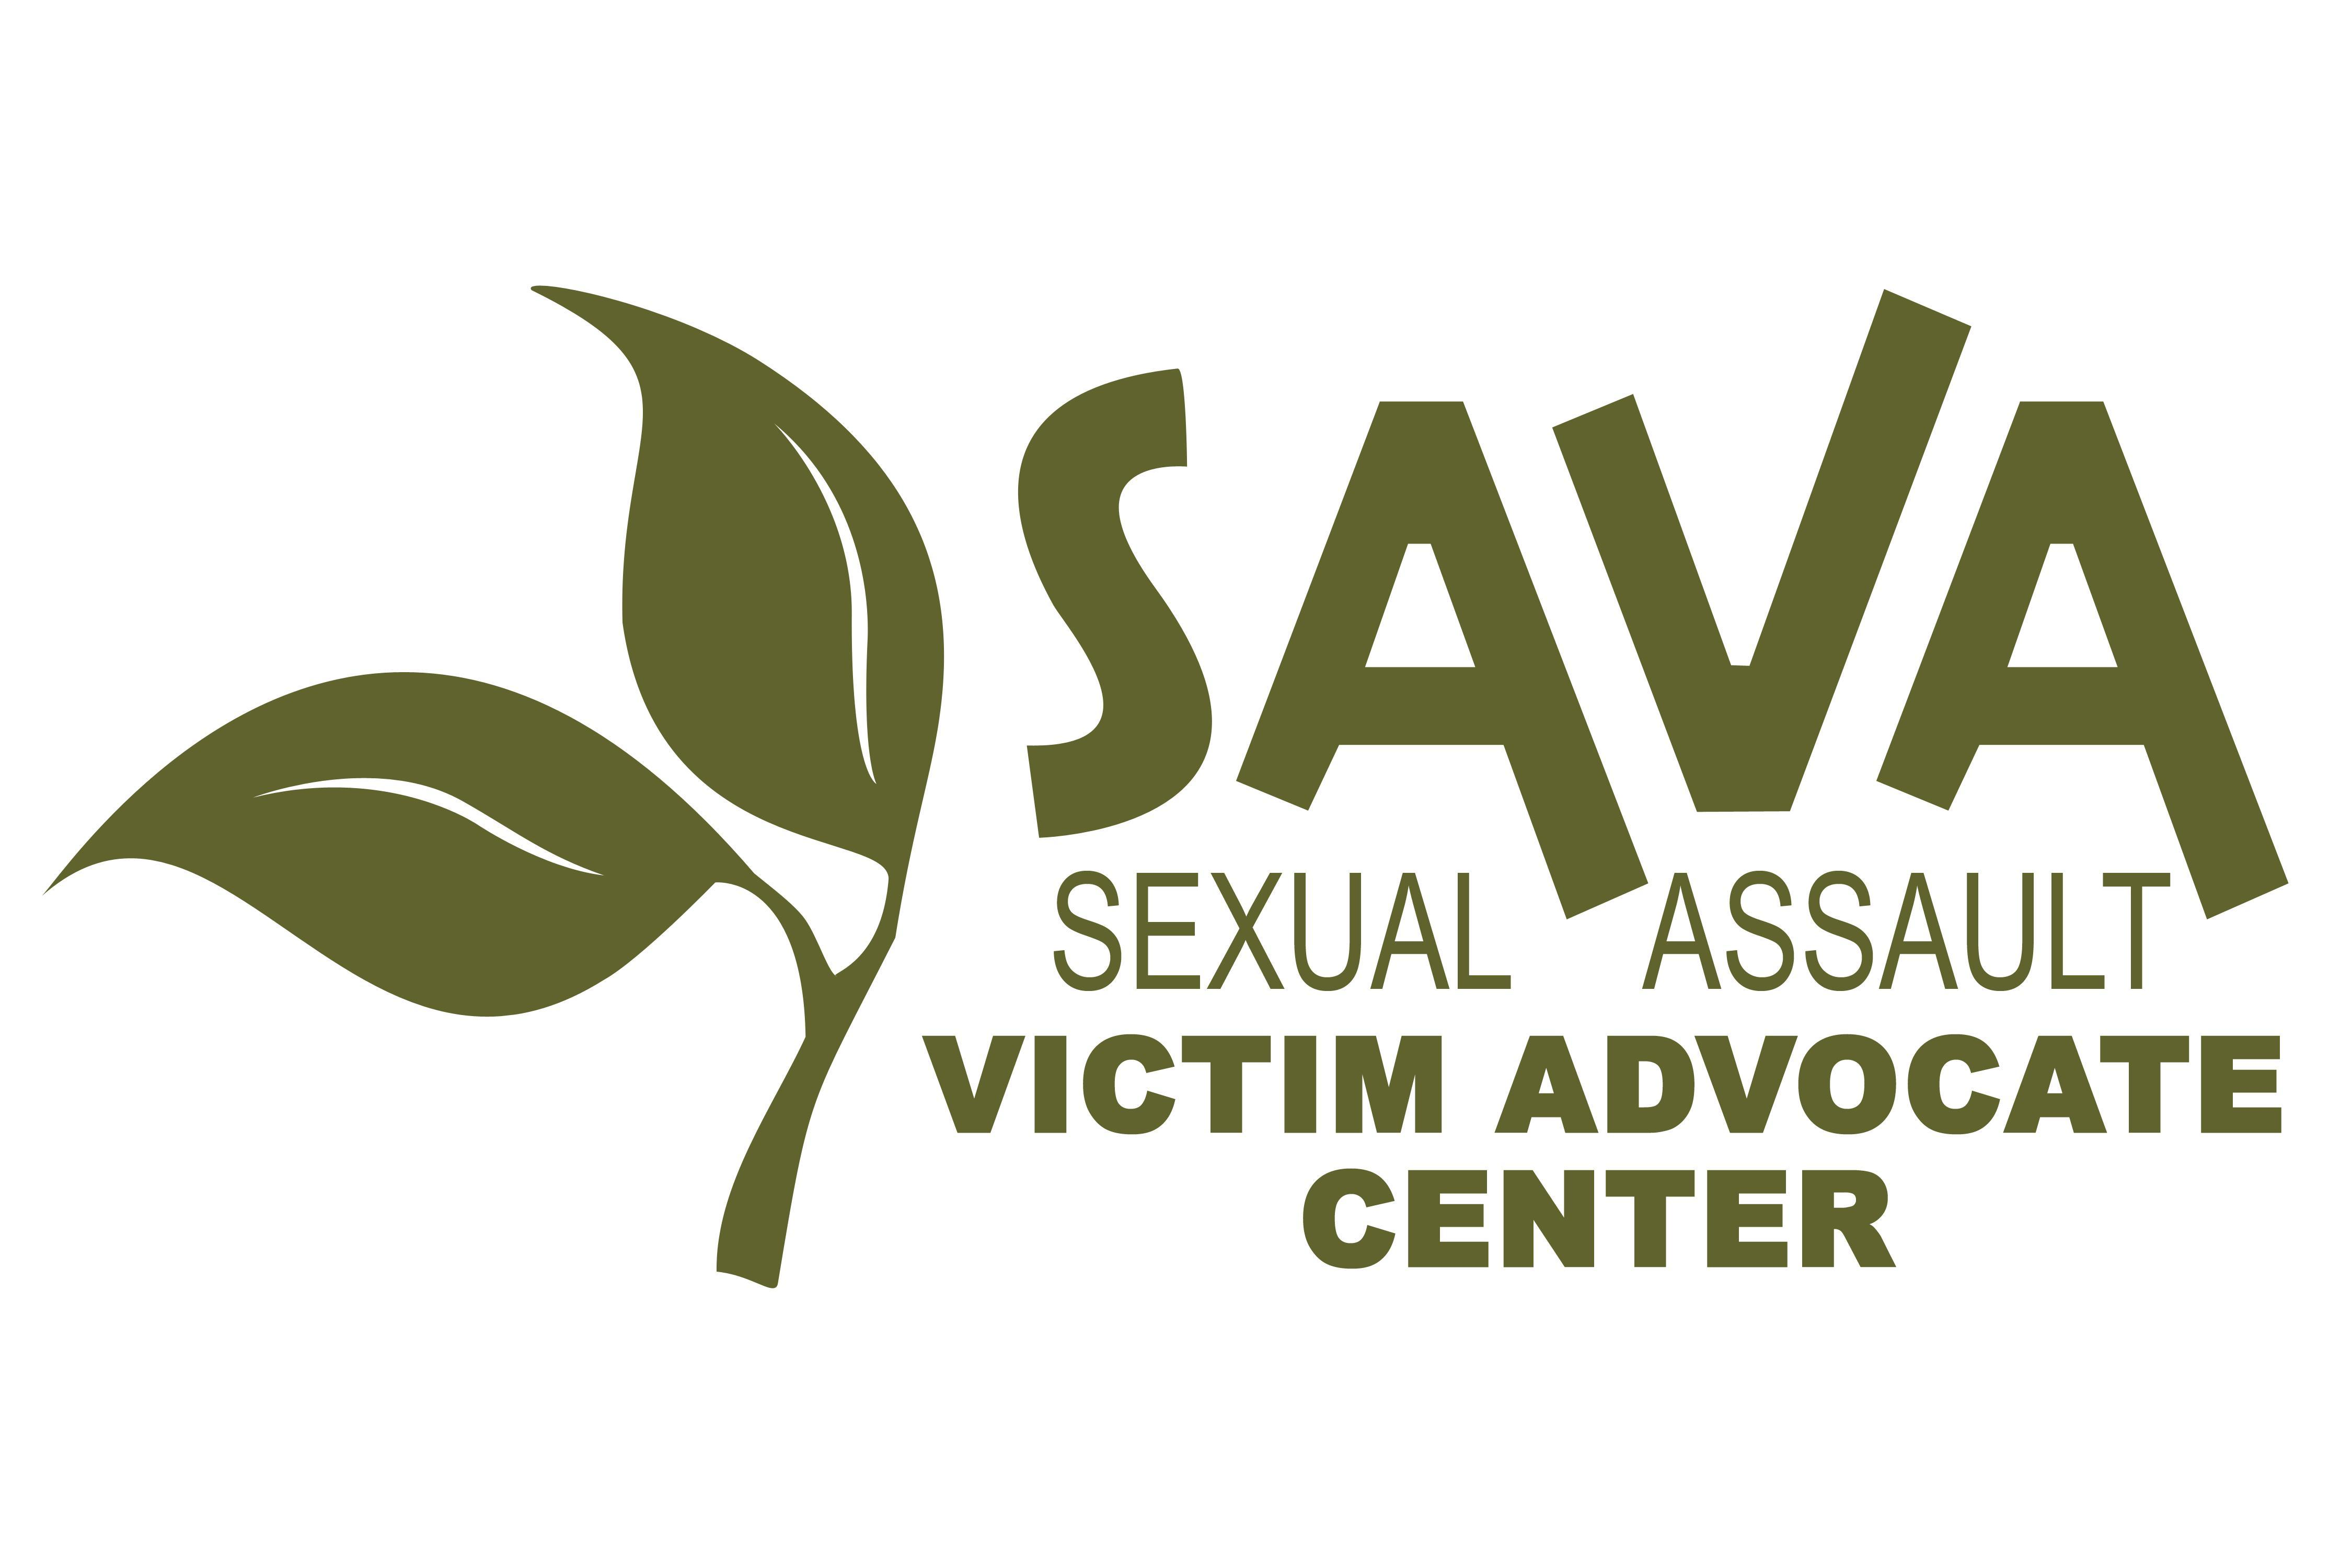 Spotlight image: Sexual Assault Victim Advocate Center